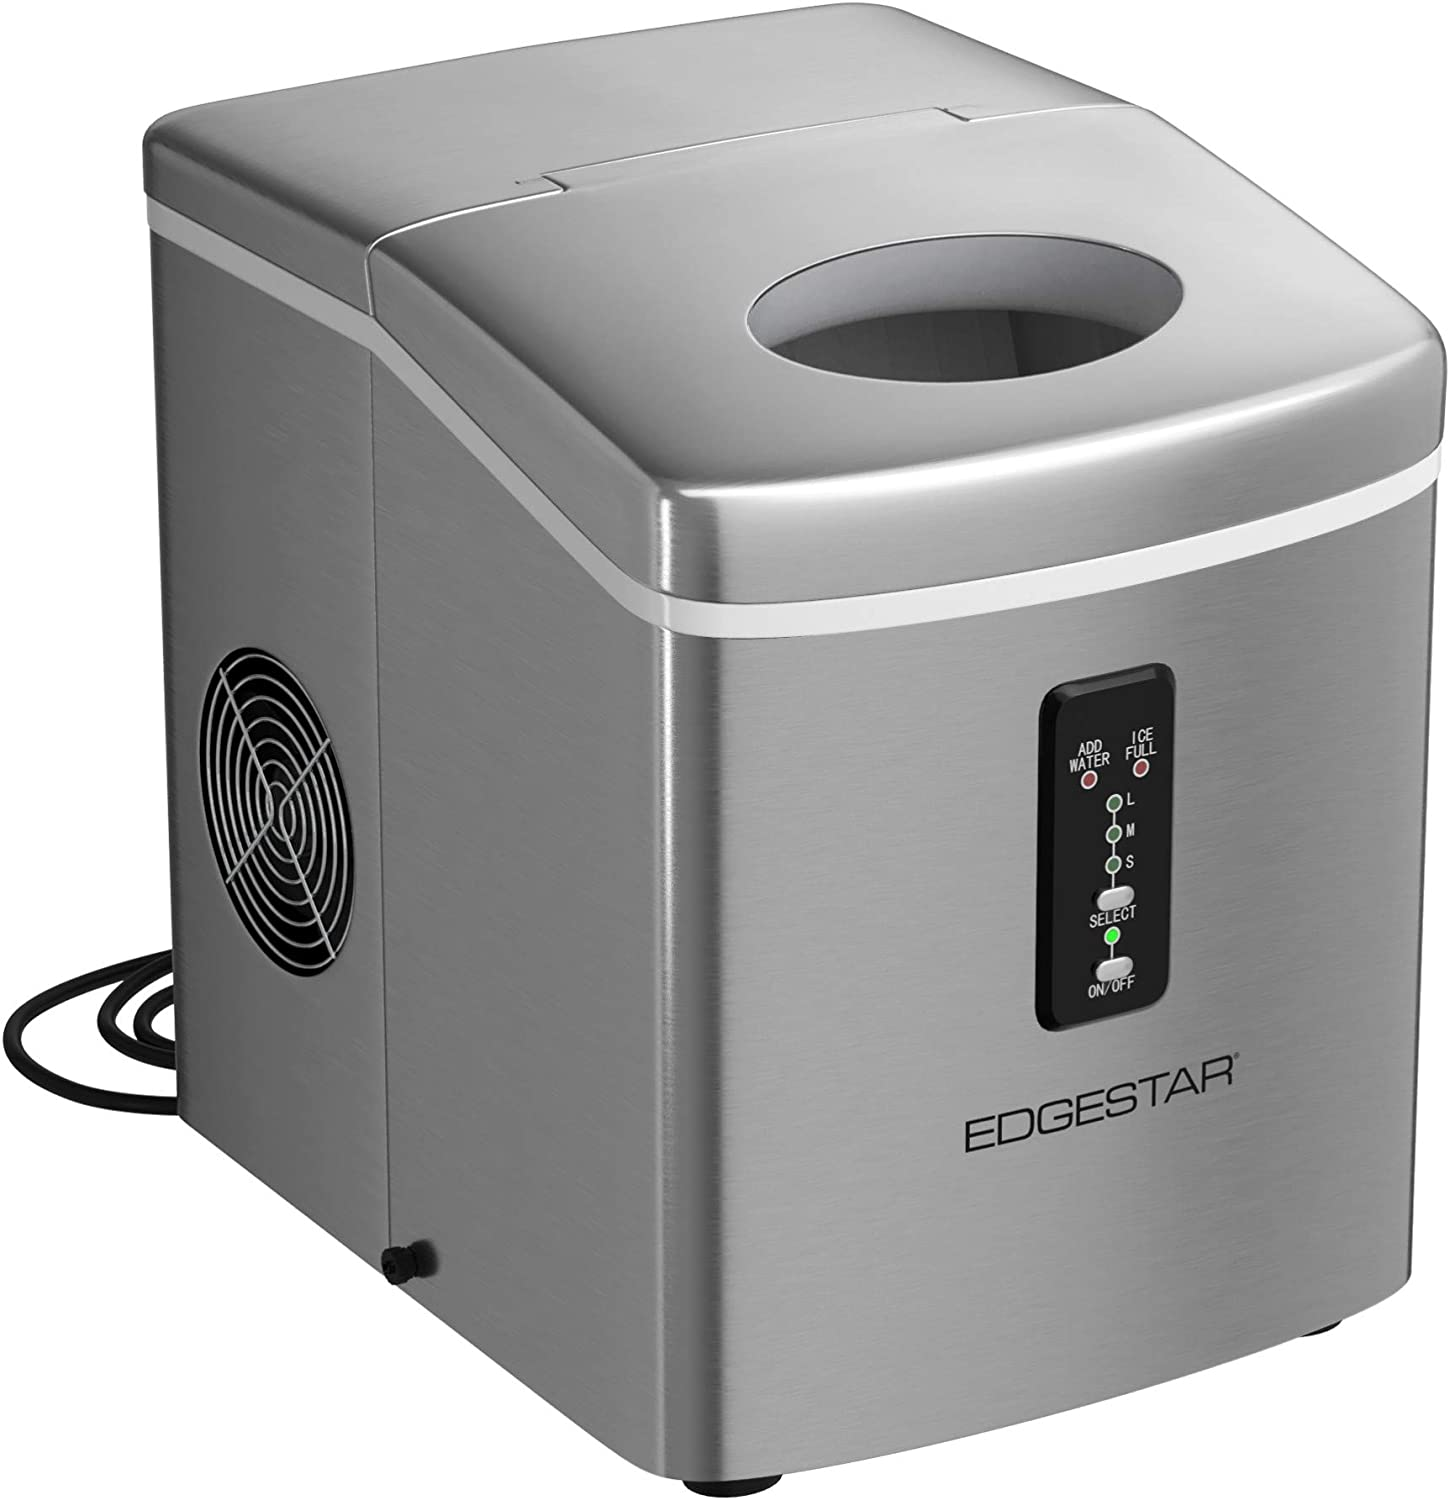 Edgestar Pim100ss 12 Inch Wide 2 2 Lbs Capacity Portable Ice Maker With 26 5 Lbs Daily Ice Production Home Improvement